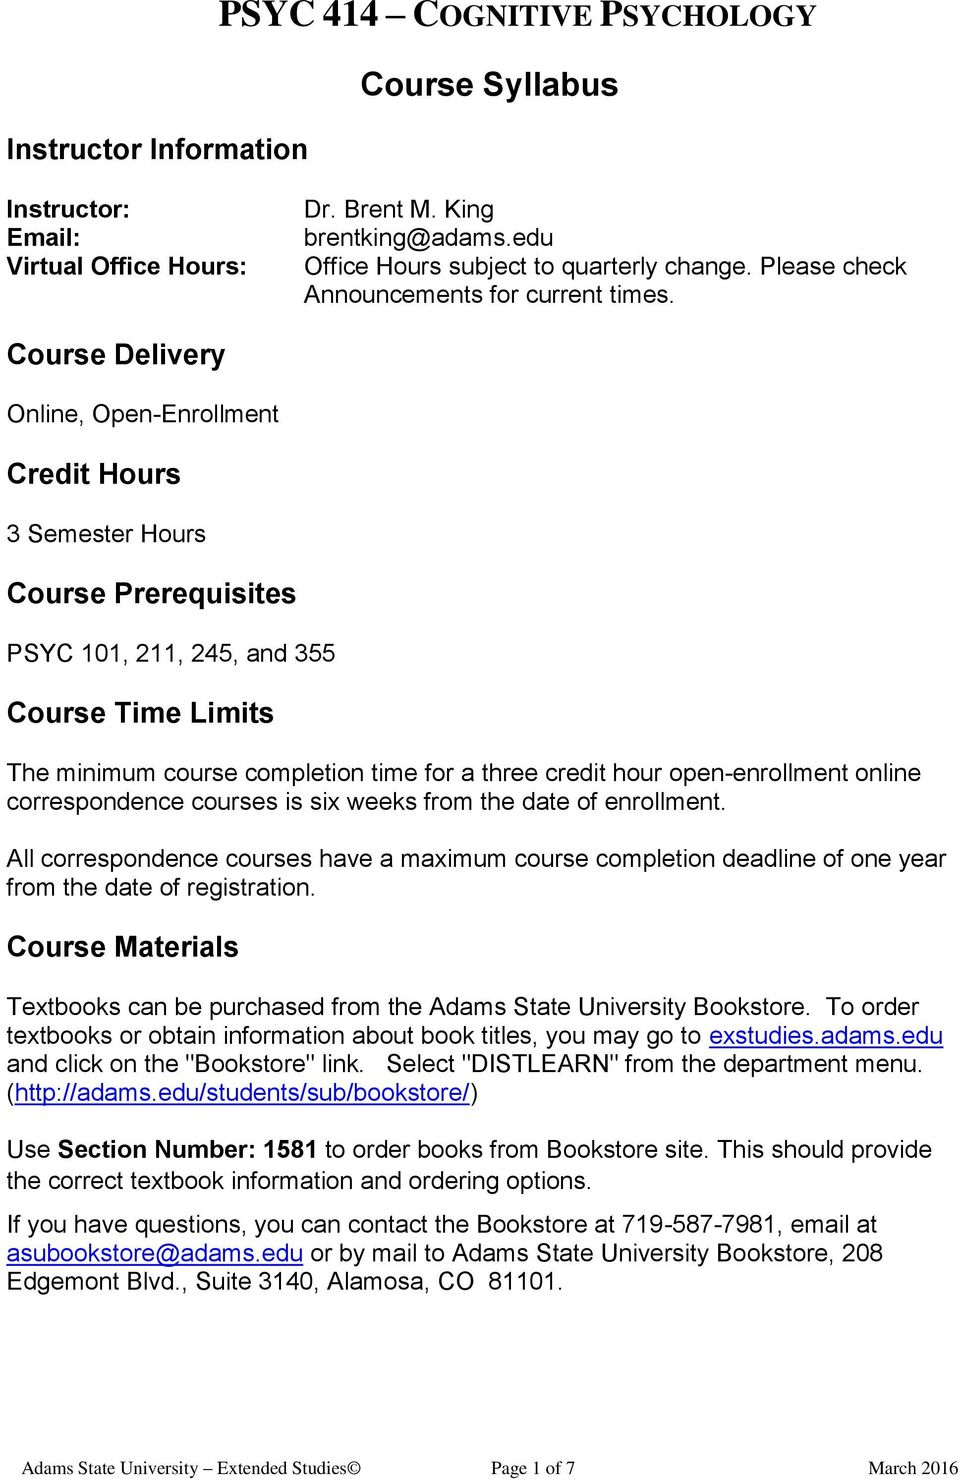 Course Delivery Online, Open-Enrollment Credit Hours 3 Semester Hours Course Prerequisites PSYC 101, 211, 245, and 355 Course Time Limits The minimum course completion time for a three credit hour